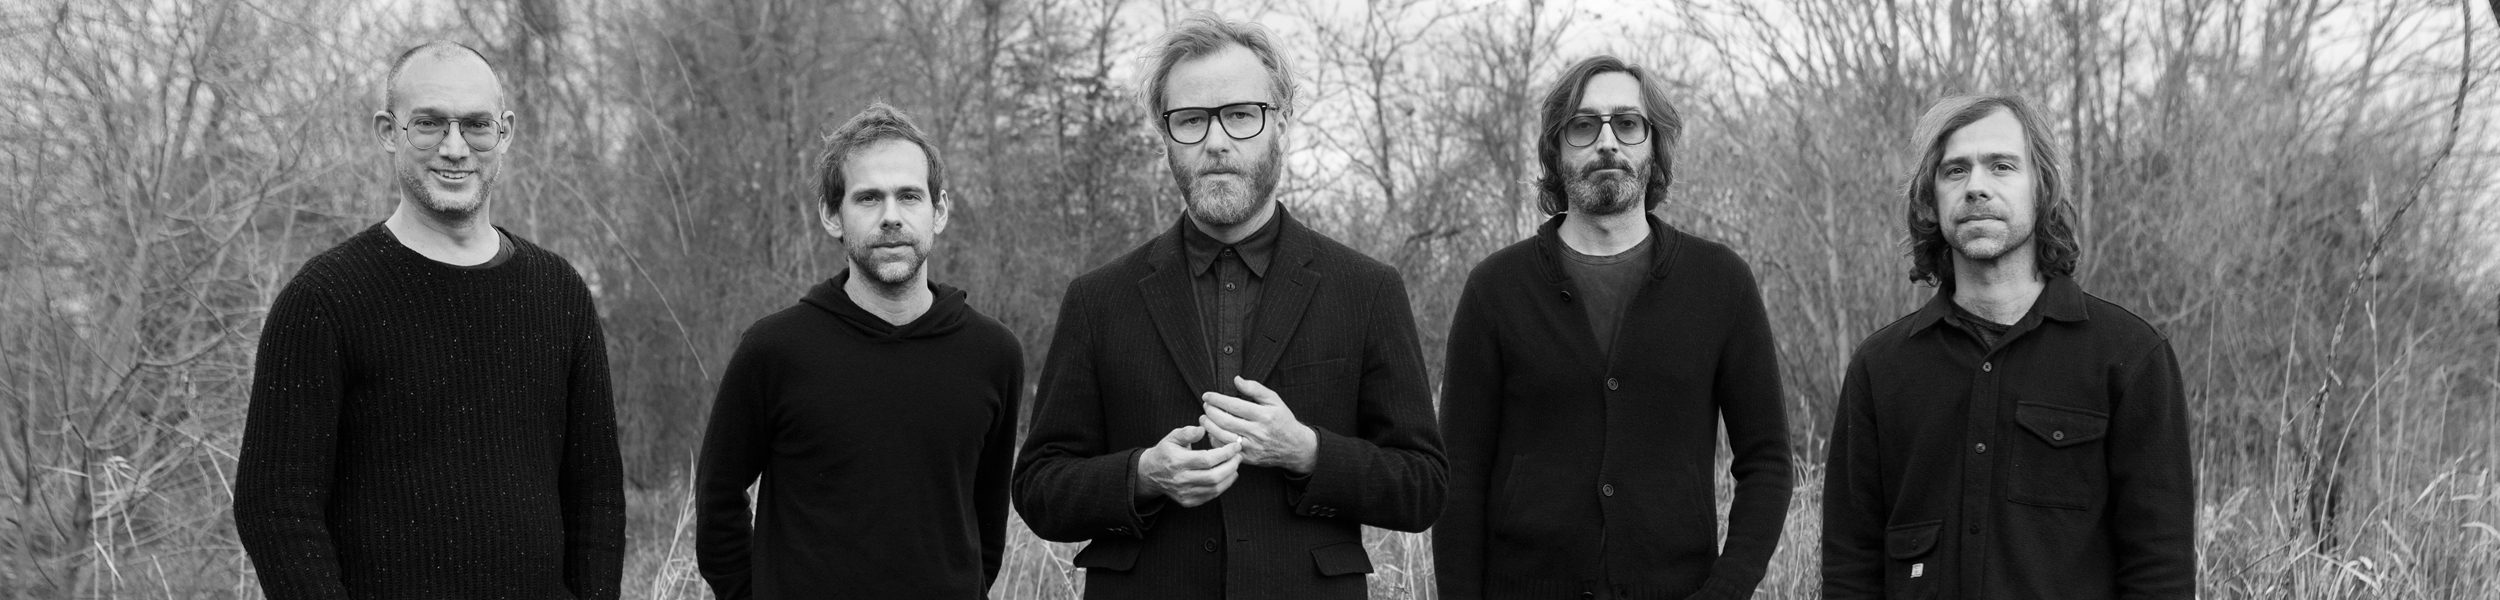 The National - The National's Mistaken For Strangers Sets Theatrical Release